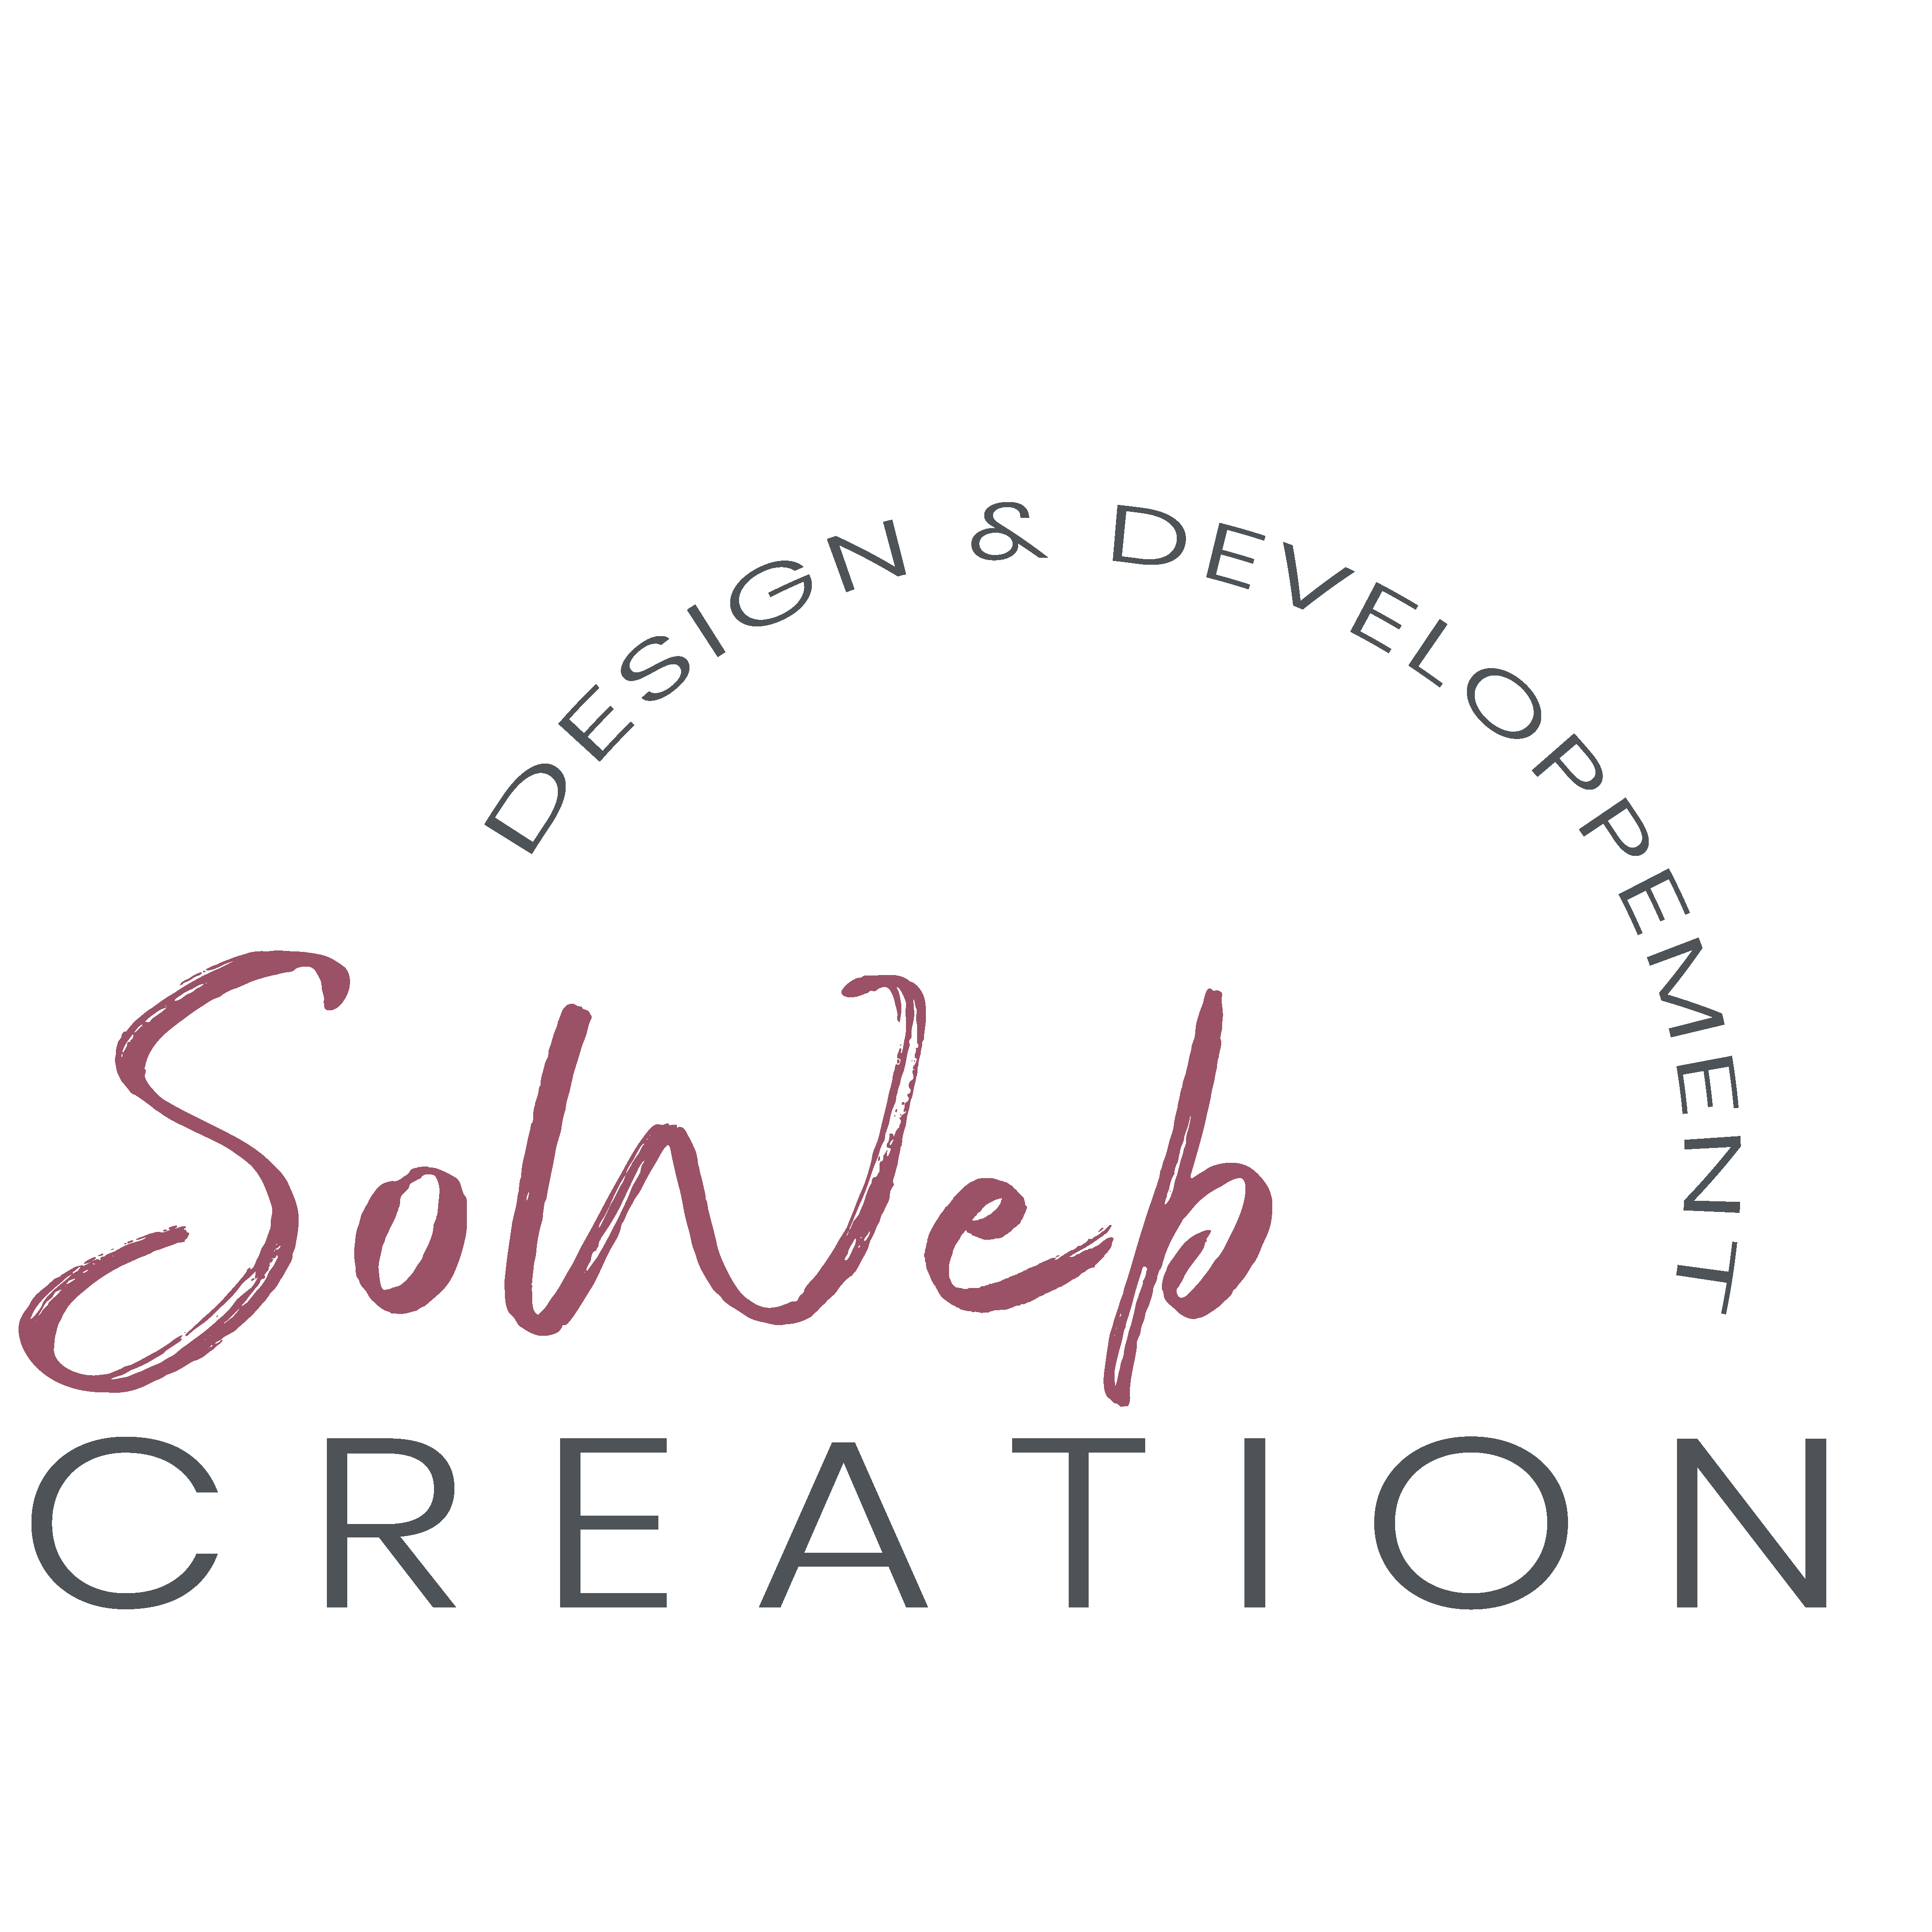 SO WEB Creation